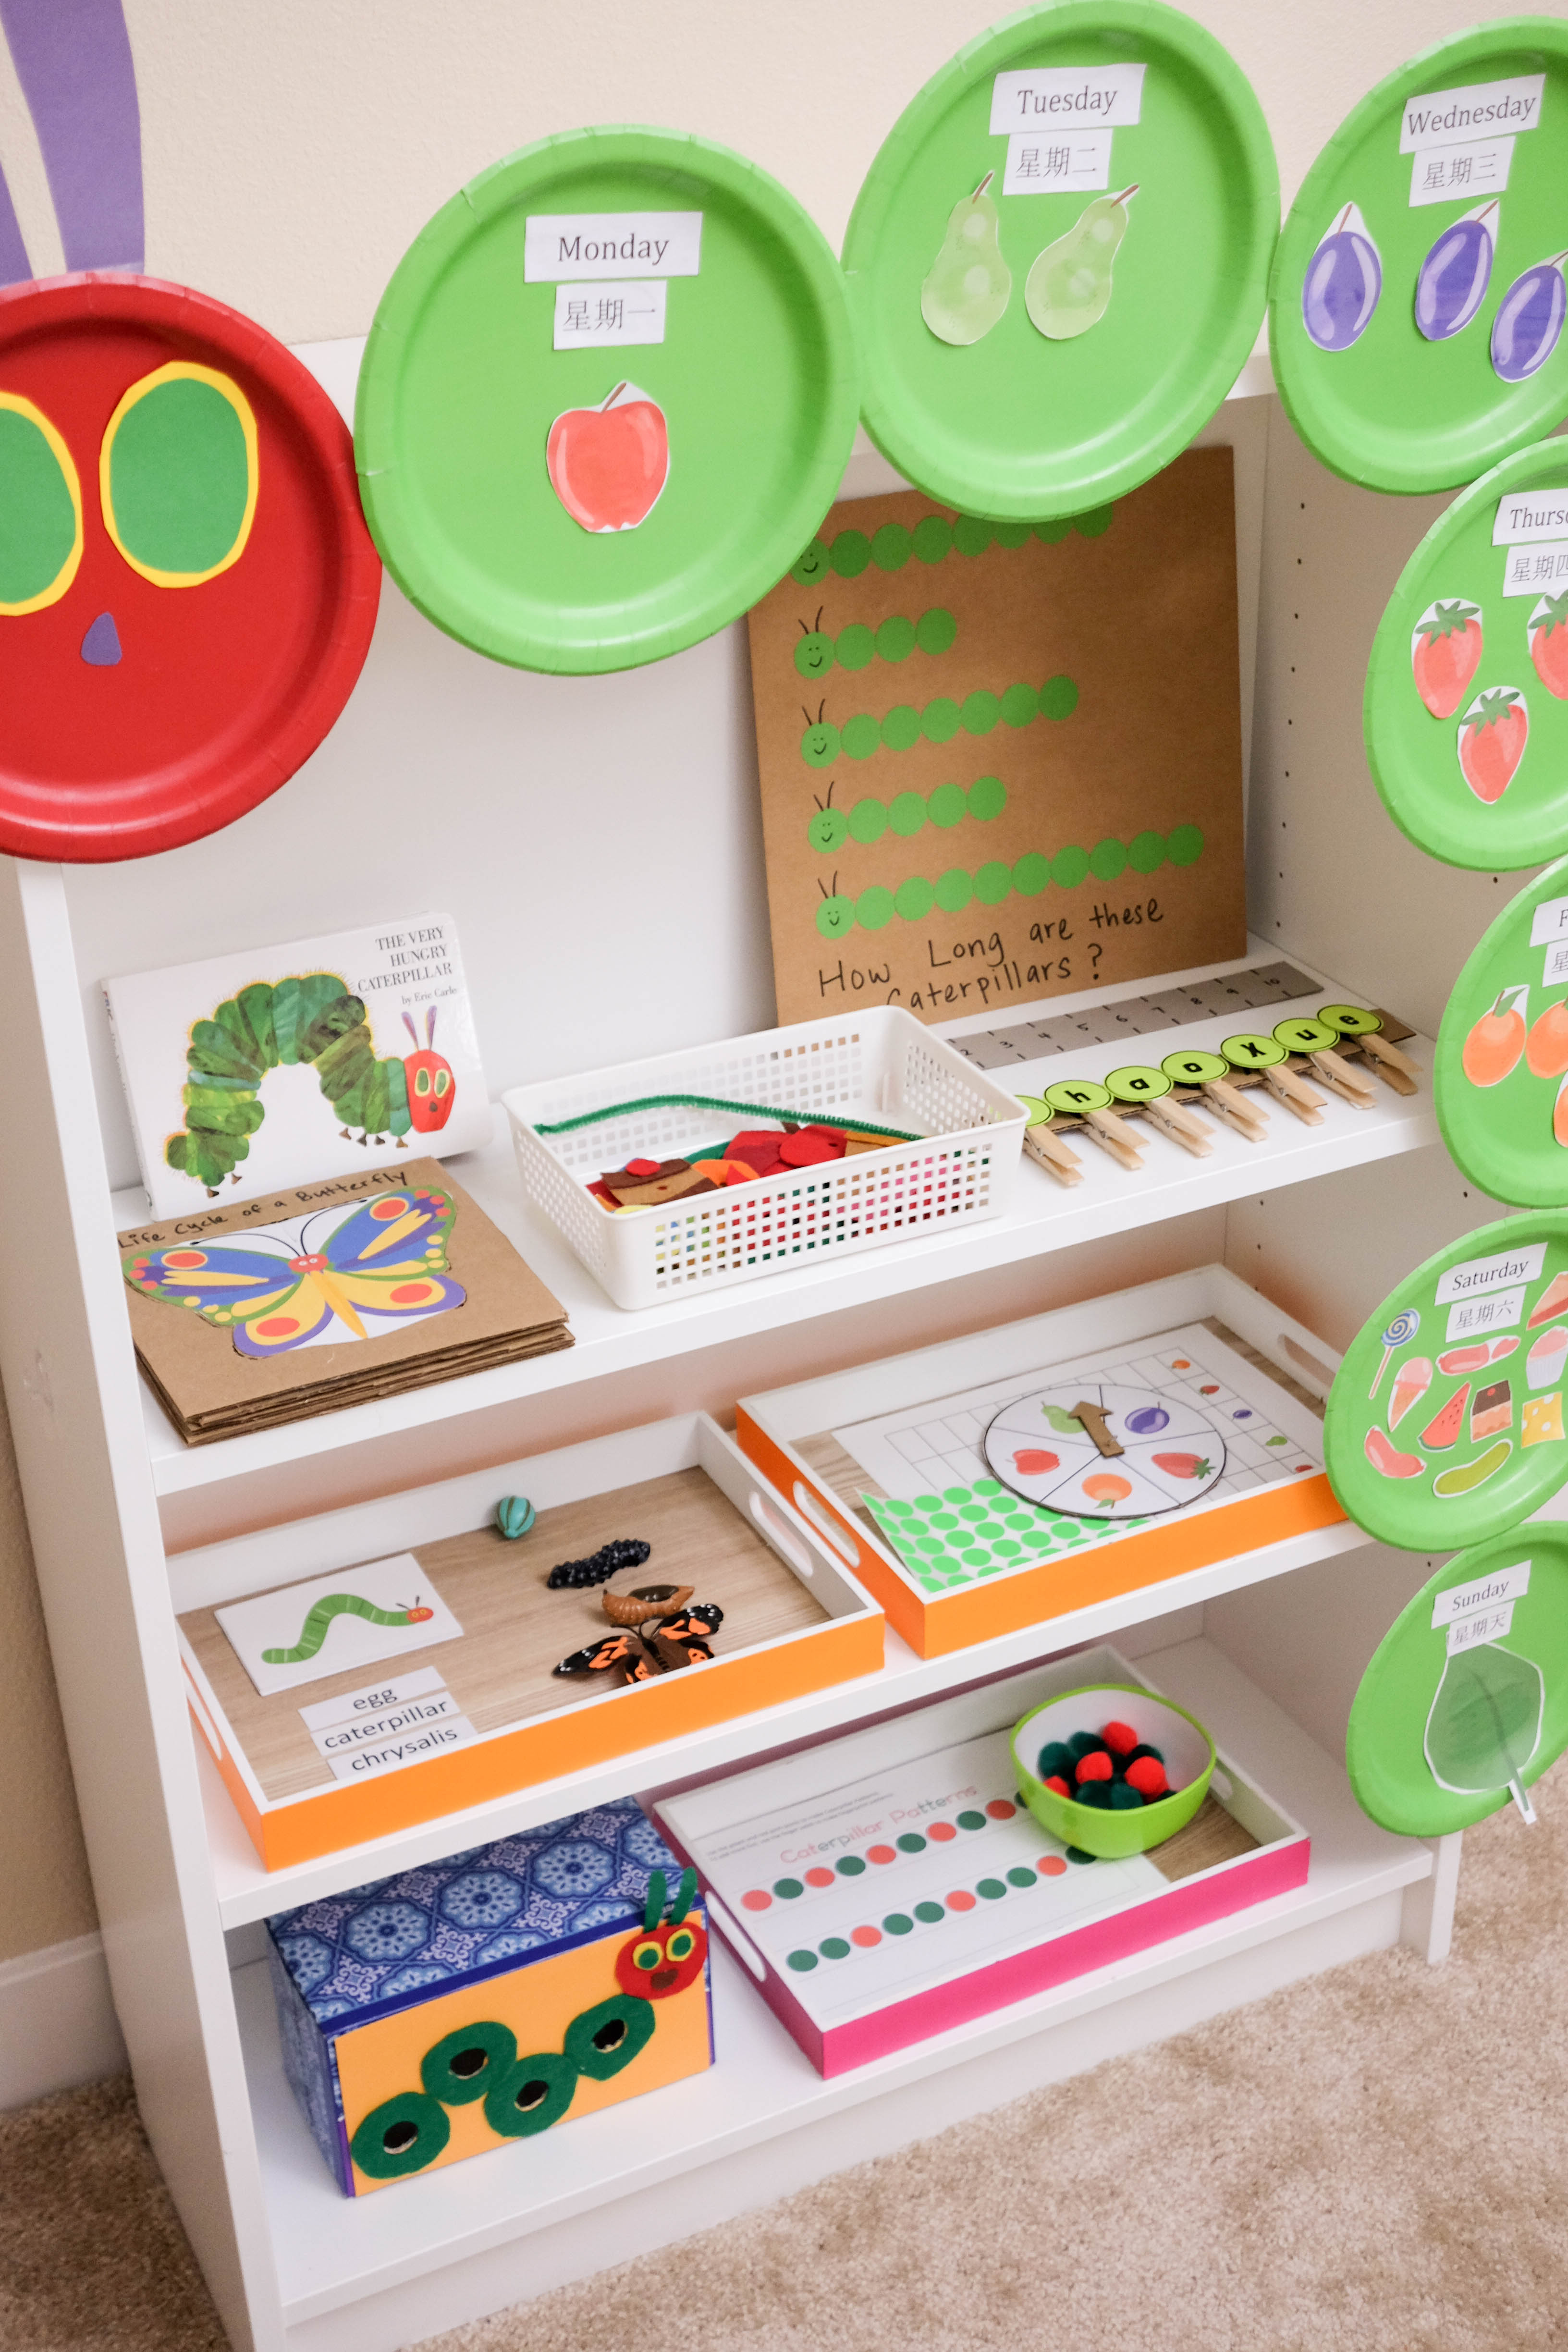 My First Room Toddler 3 Piece Room In A Box: The Very Hungry Caterpillar Learning Activities & Shelf